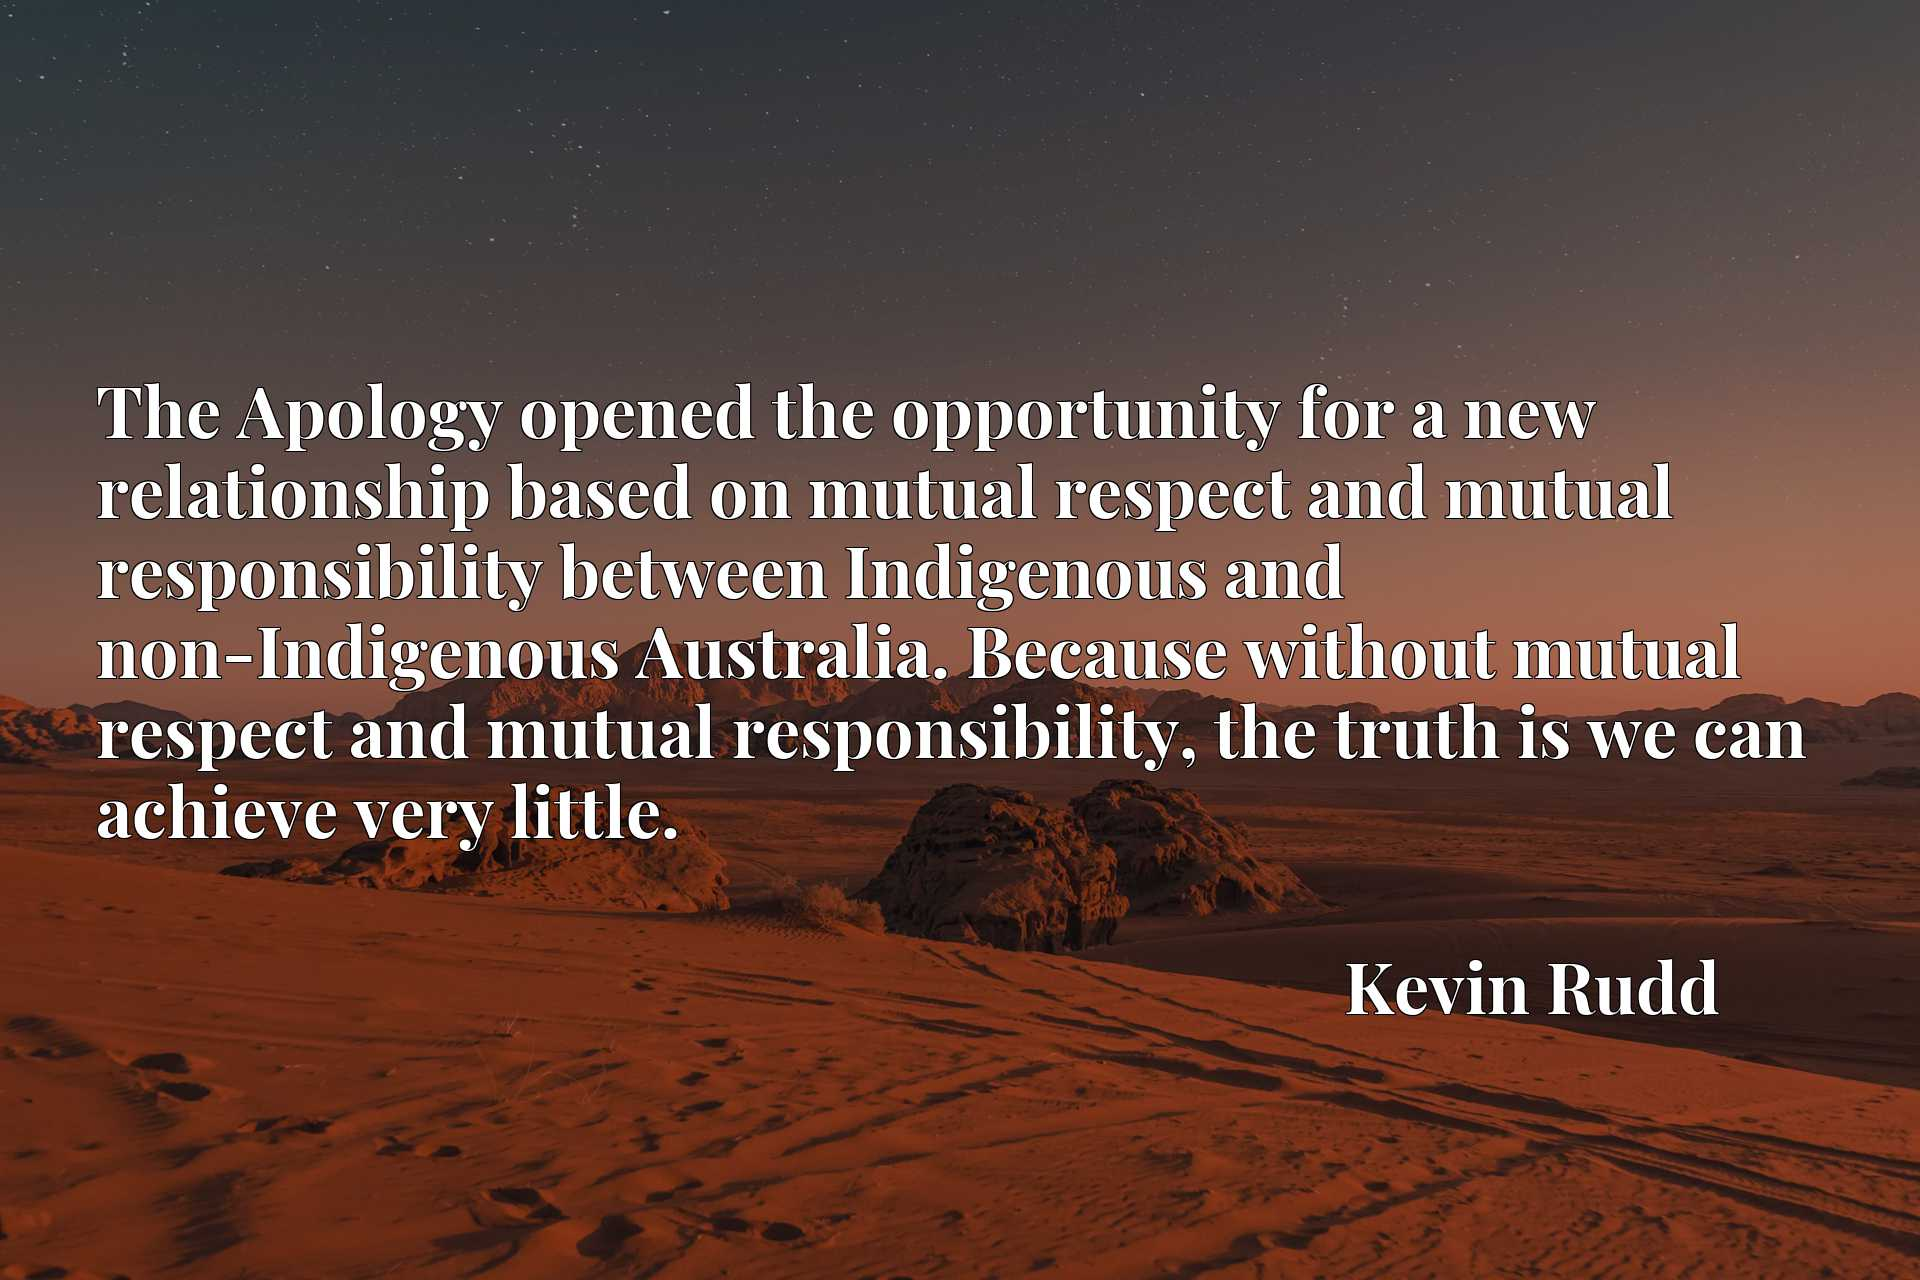 The Apology opened the opportunity for a new relationship based on mutual respect and mutual responsibility between Indigenous and non-Indigenous Australia. Because without mutual respect and mutual responsibility, the truth is we can achieve very little.